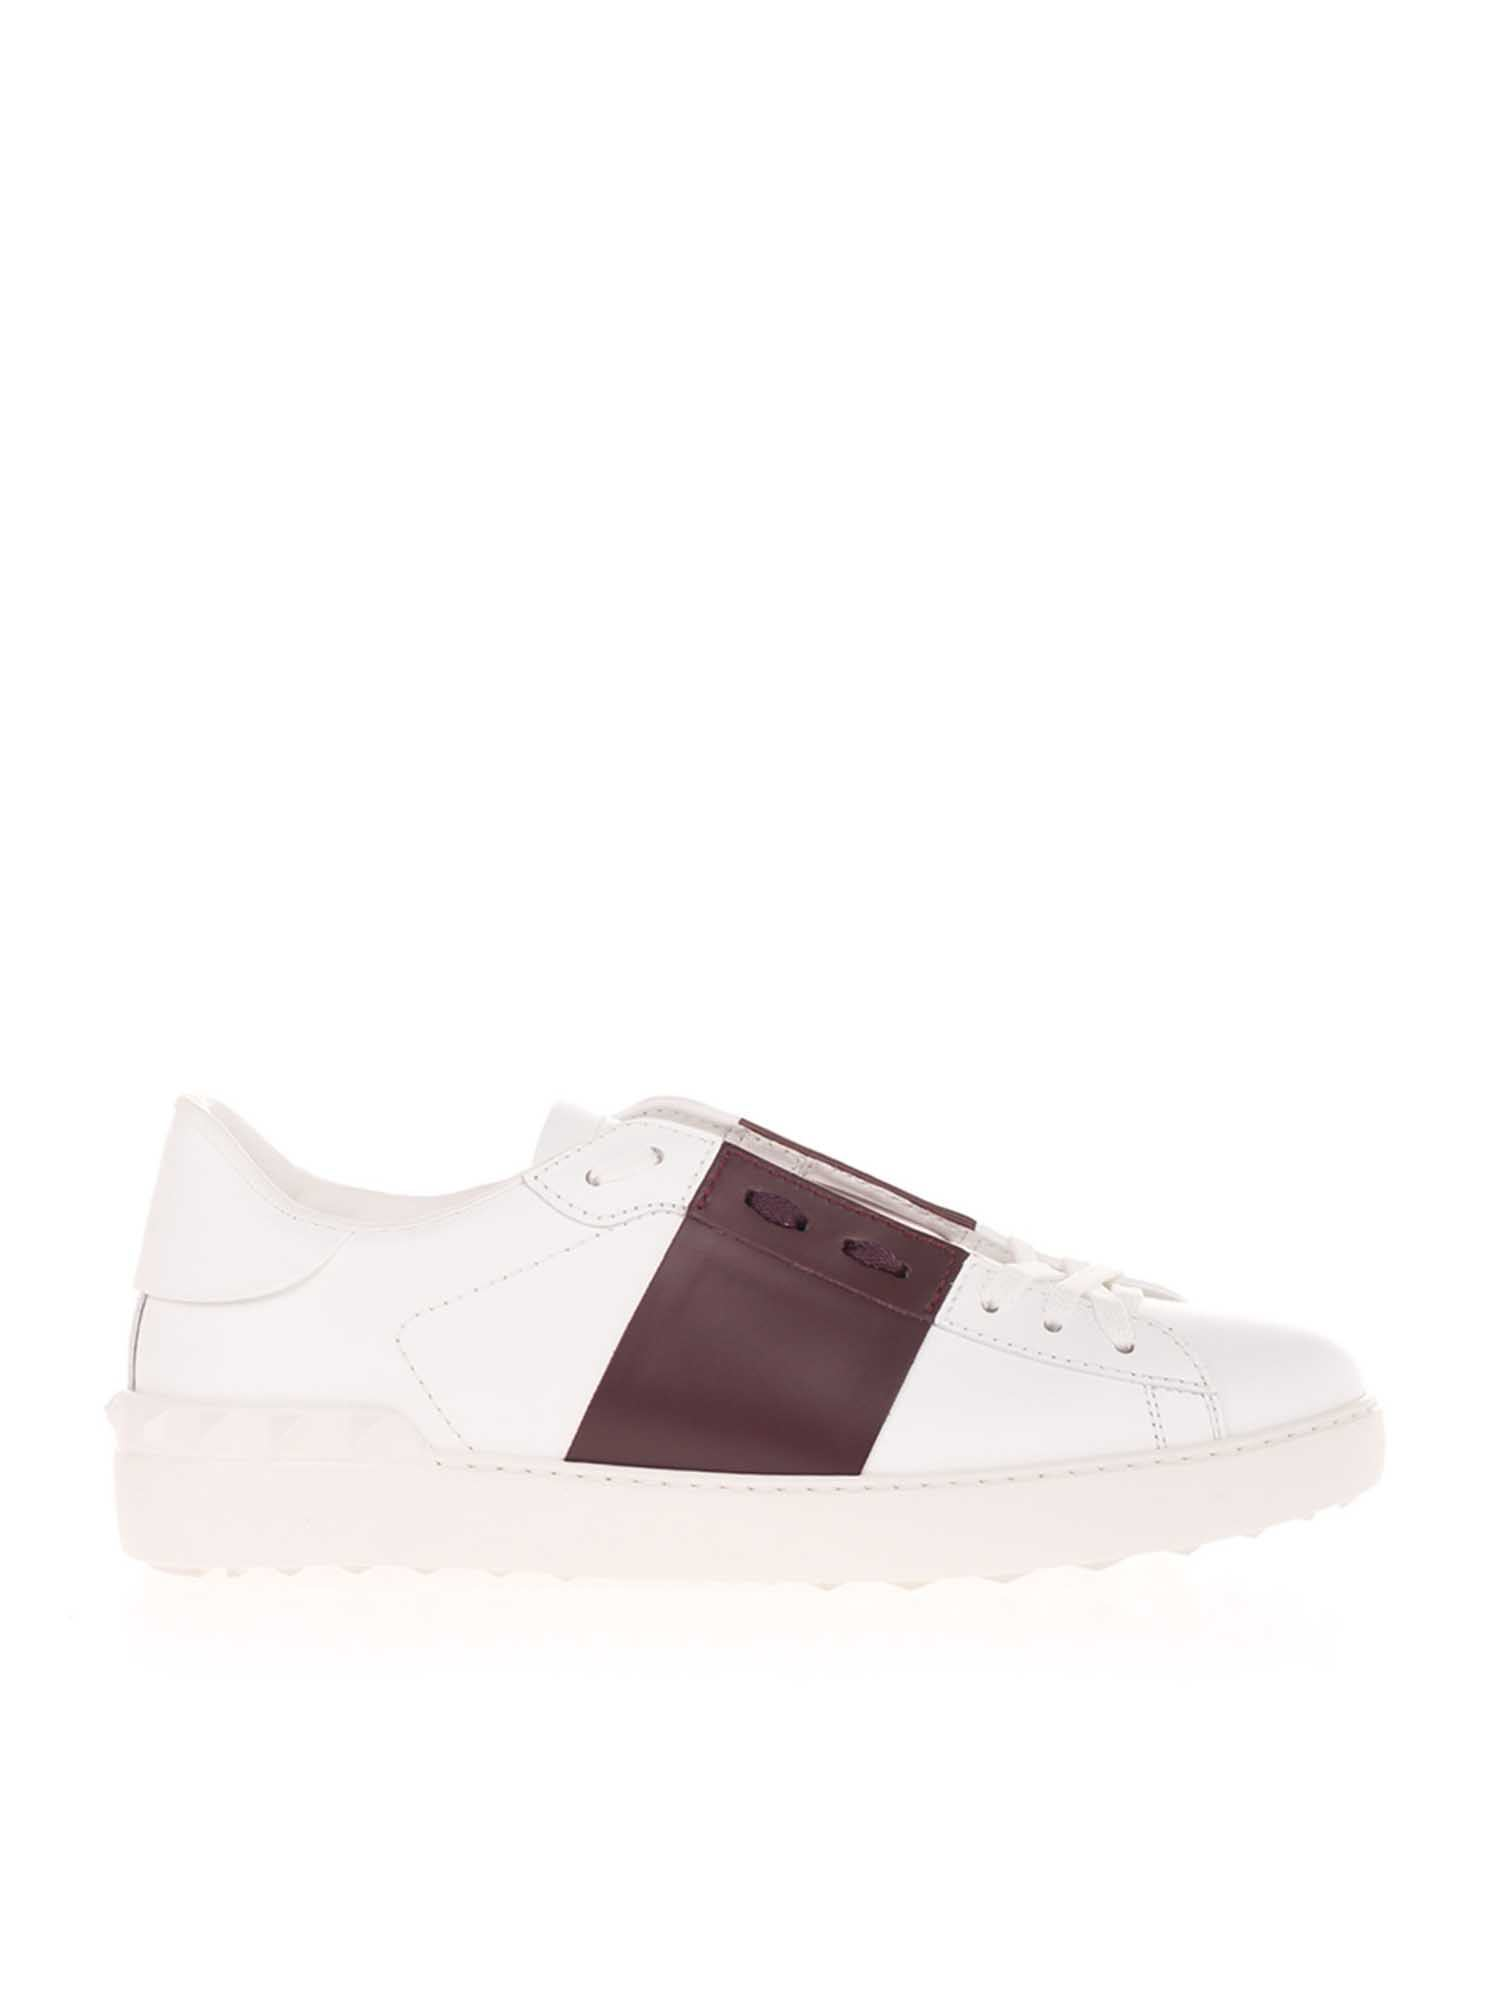 Valentino OPEN SNEAKERS IN WHITE AND BURGUNDY